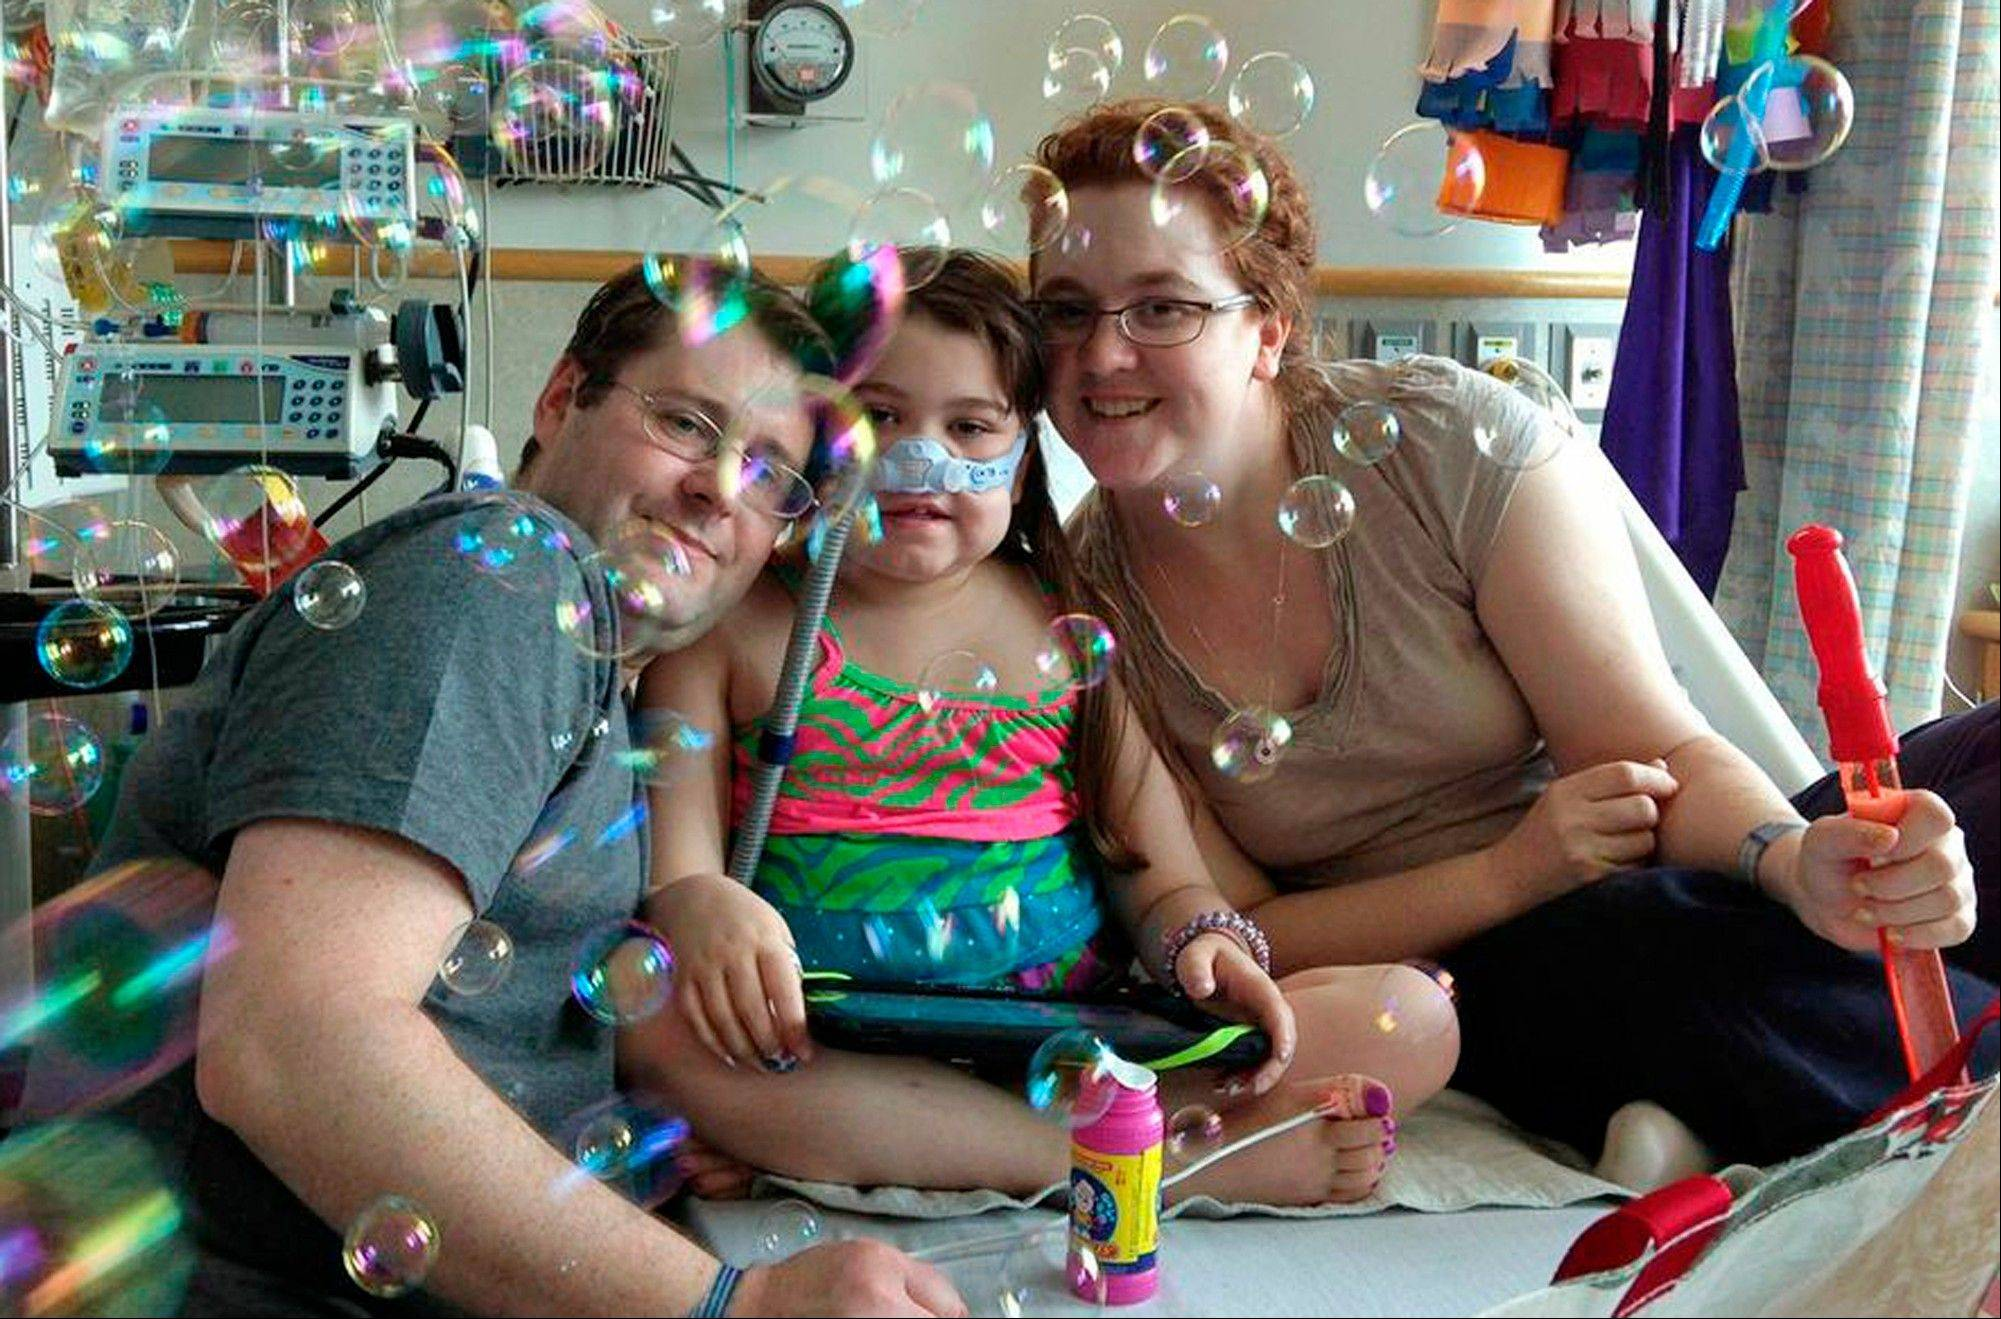 Sarah Murnaghan, center, celebrates the 100th day of her stay in Children's Hospital of Philadelphia with her father, Fran, left, and mother, Janet. The 10-year-old suburban Philadelphia girl received a lung transplant there Wednesday, June 12, 2013, her family said.